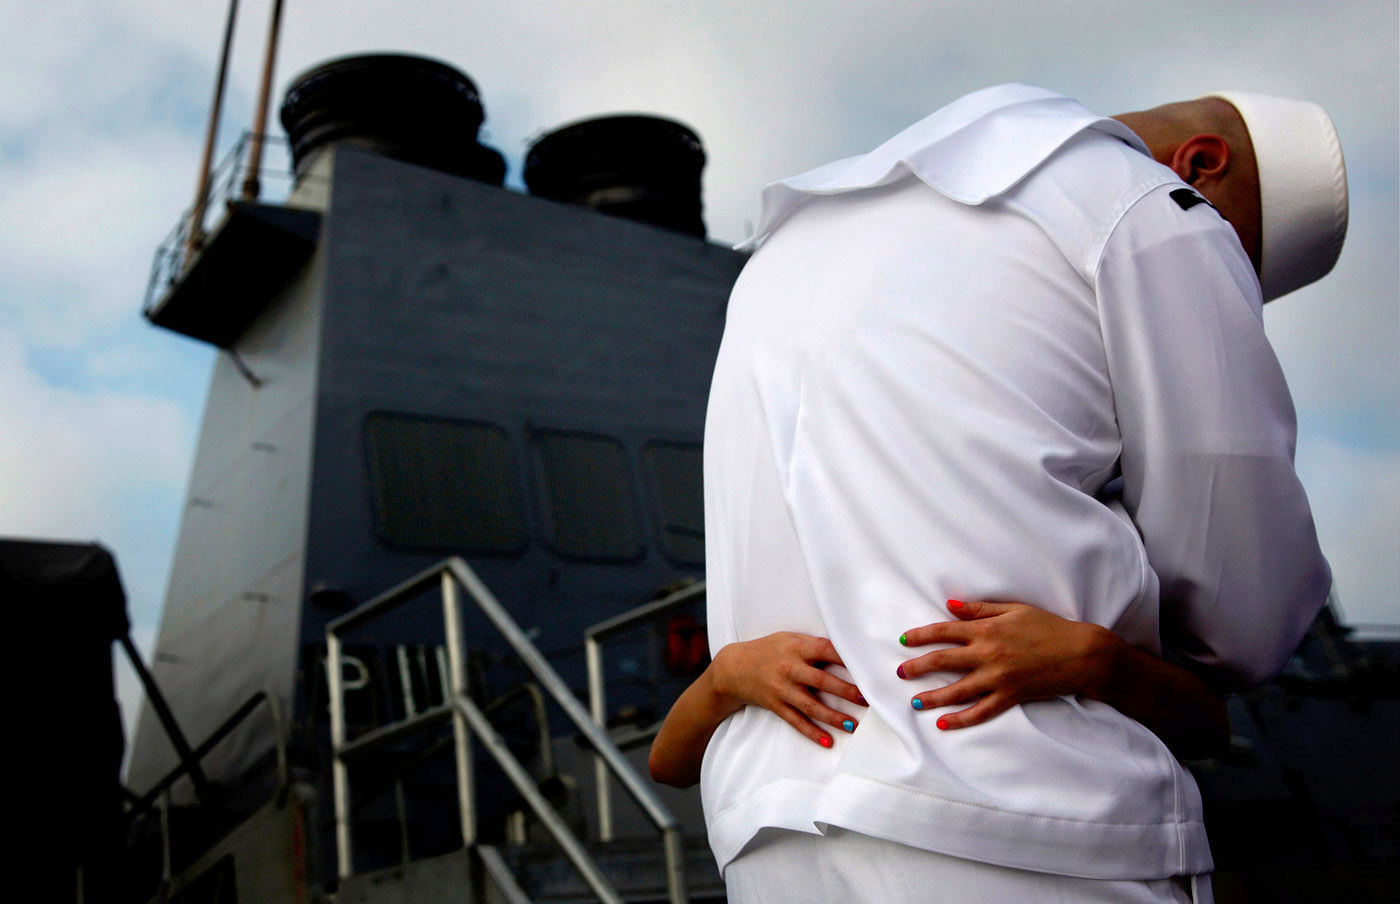 Sierra Wetterstrom, 8, clings to her father, Petty Officer 1st class Tyson Wetterstrom during his homecoming at the Norfolk Naval Station. Wetterstrom and the rest of the guided missile destroyer crew returned from a seven-month deployment to the Mediterranean Sea.